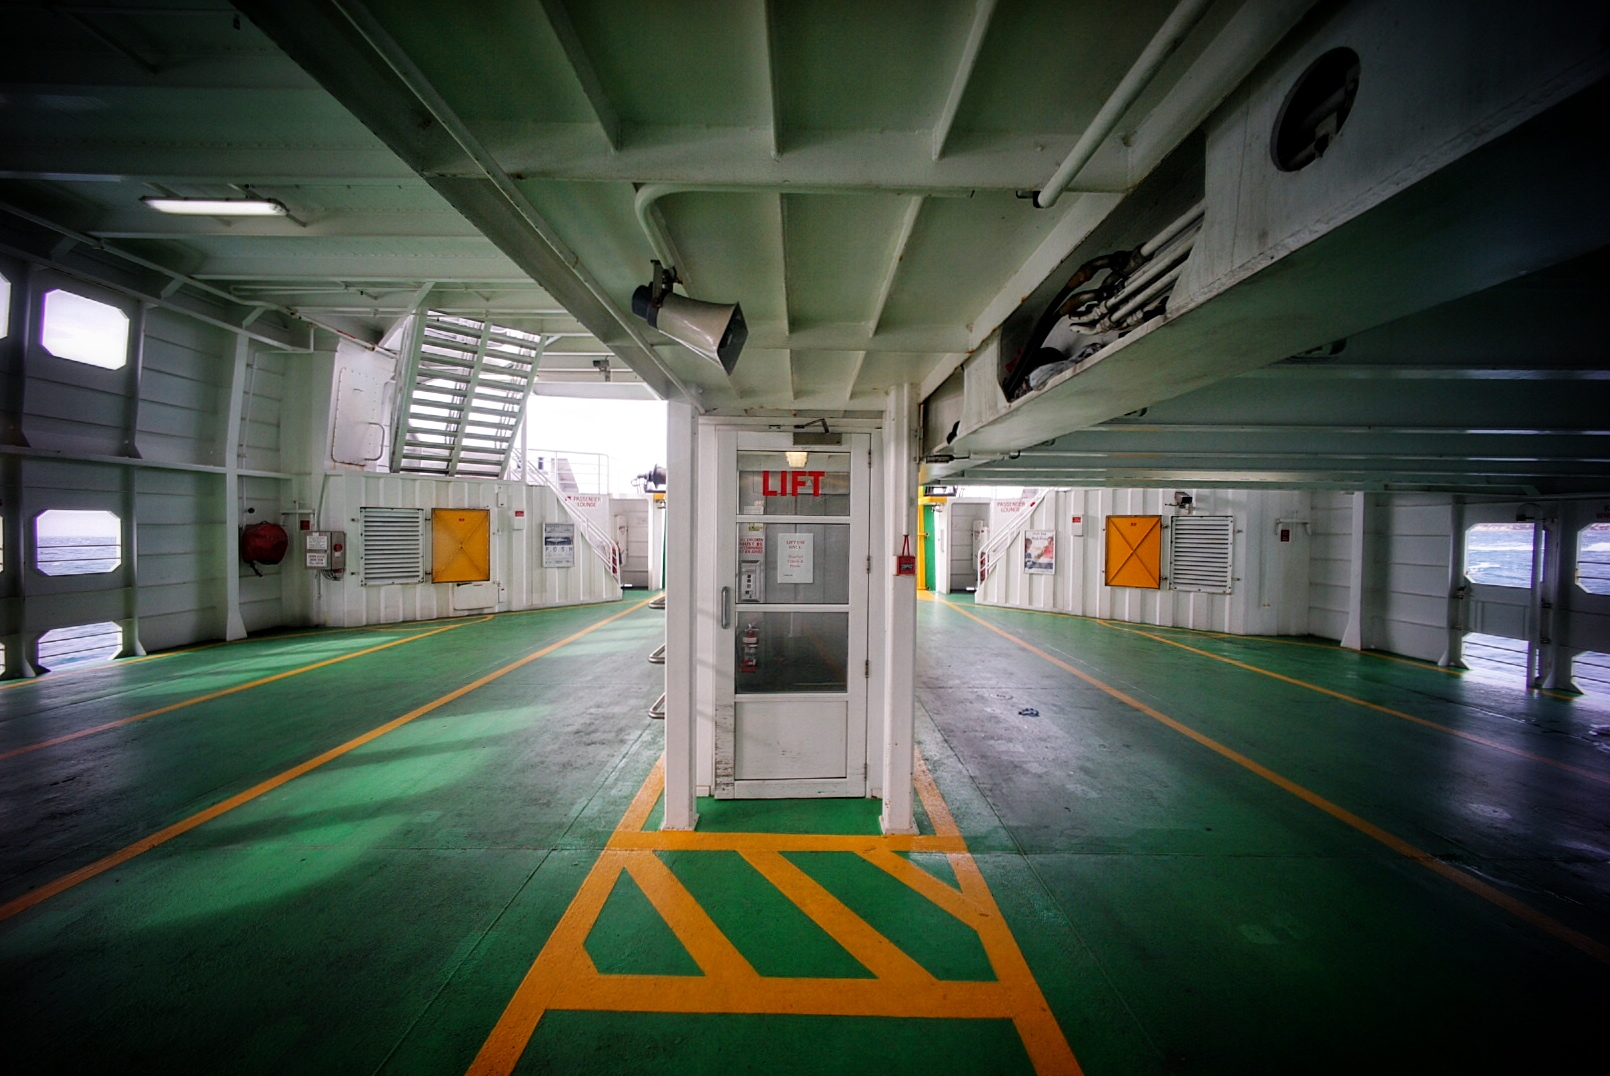 Ferry Interior 2 #sonya7 #voigtlander12mm #ultrawideangle #ultrawideheliar #sorrento #queenscliff #ferry